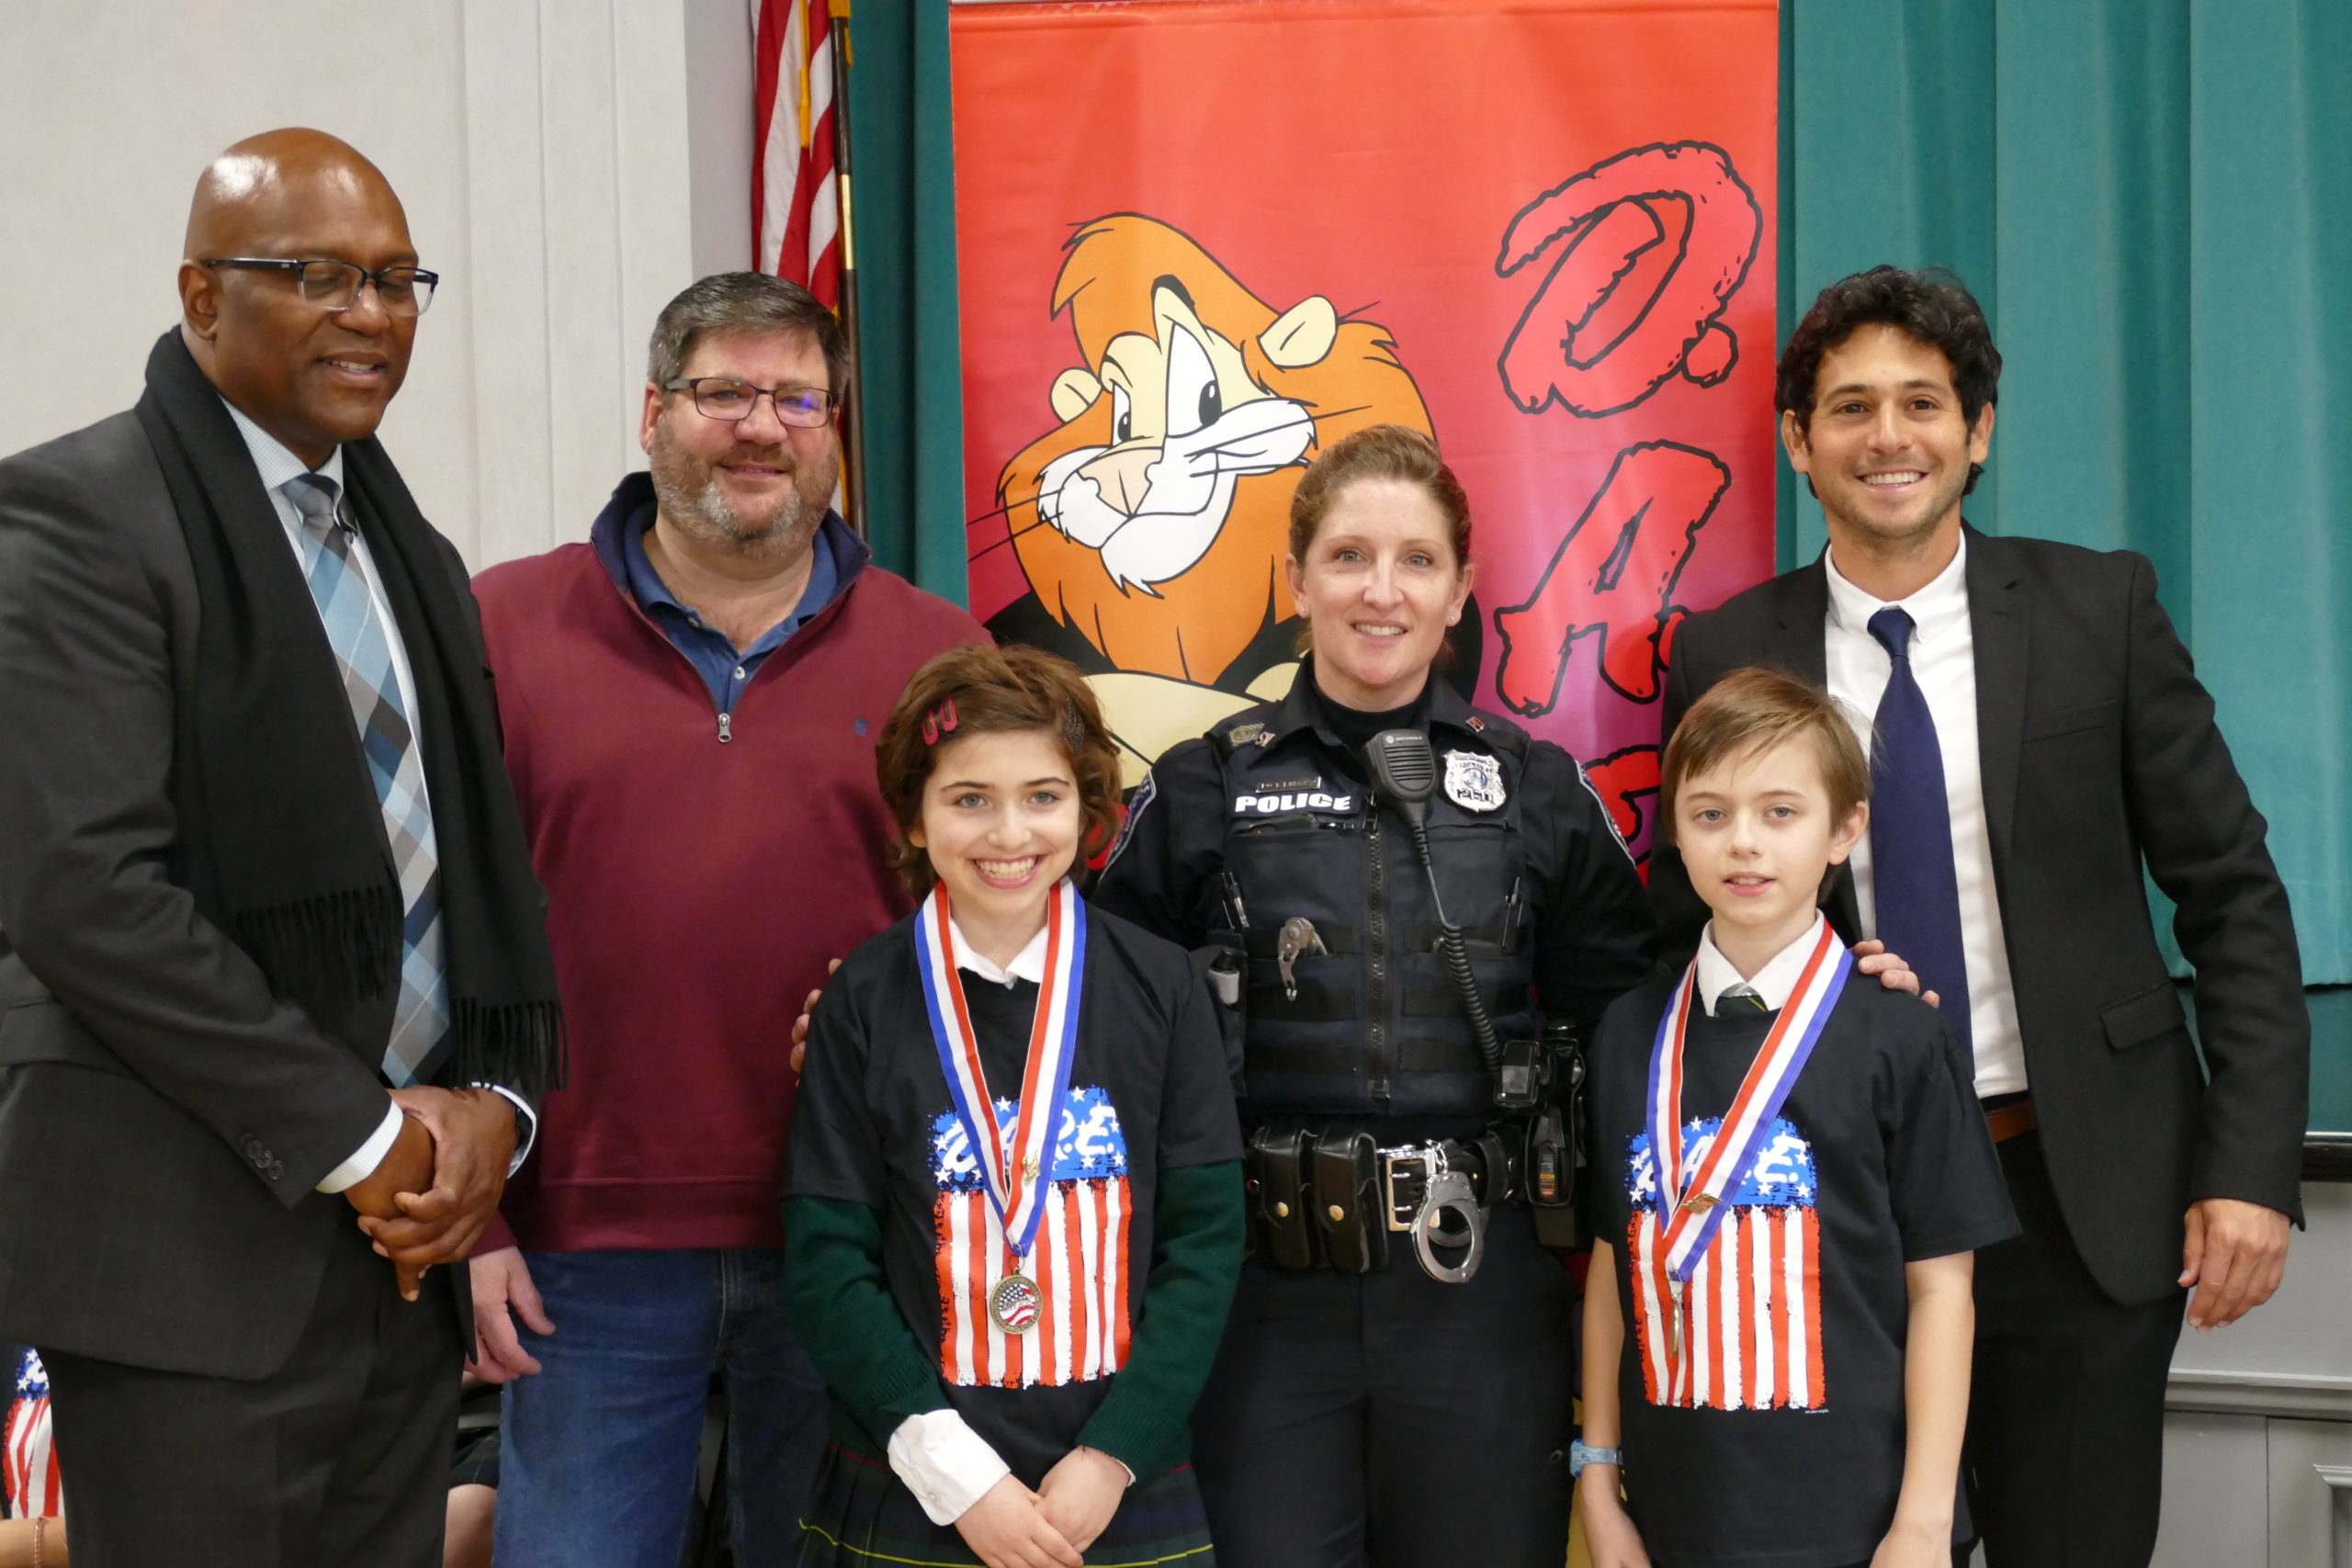 Southampton Police Officer Tiffany Lubold presented Our Lady of the Hamptons School fifth-graders with certificates of completion at the DARE graduation on January 10. Also attending the ceremony were Southampton Village Mayor Jesse Warren, right,  Southampton Village Police Detective Herman Lamison, left, and Southampton Village Trustee Richard Yastrzemski. Essay contest winners Lucy Tillotson and Oliver Nielsen read their essays on the lessons learned in the program.